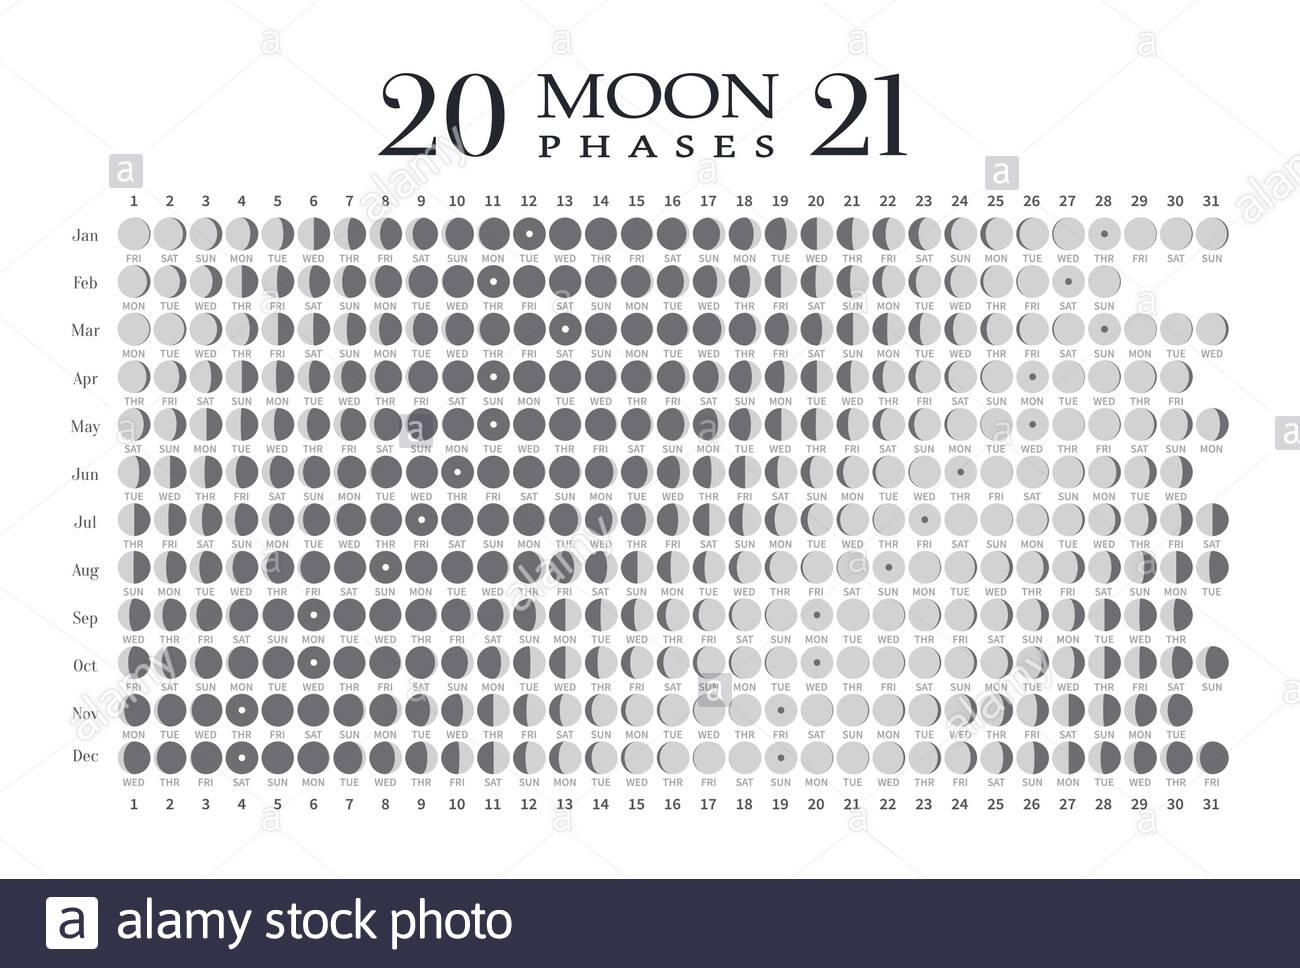 2021 Moon Phases Calendar On White Background. Astronomy